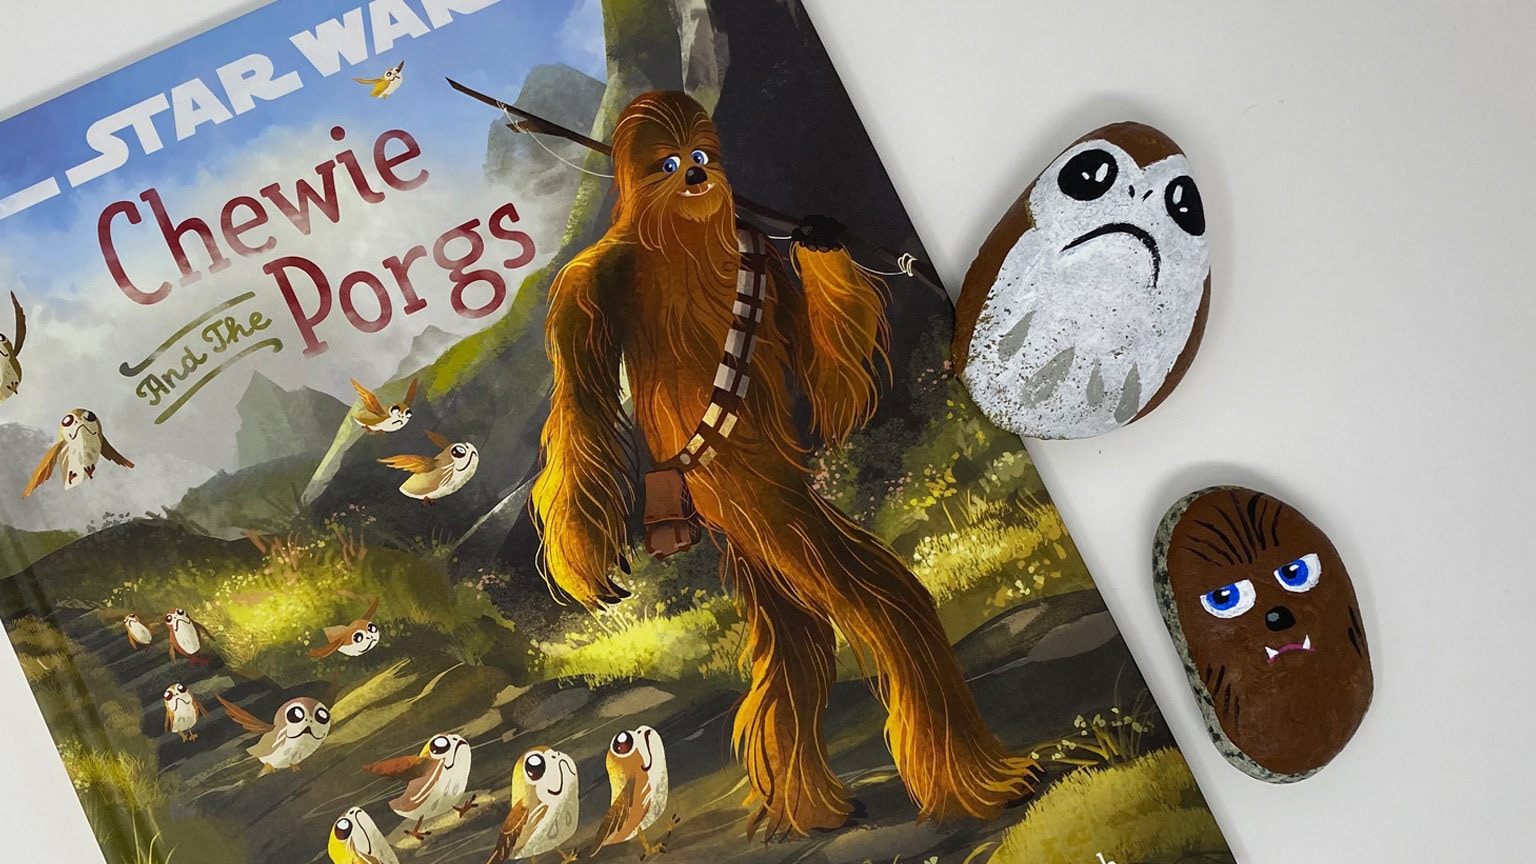 Spend a Day with Chewie and the Porgs with This Read-Along and Rock-Painting DIY